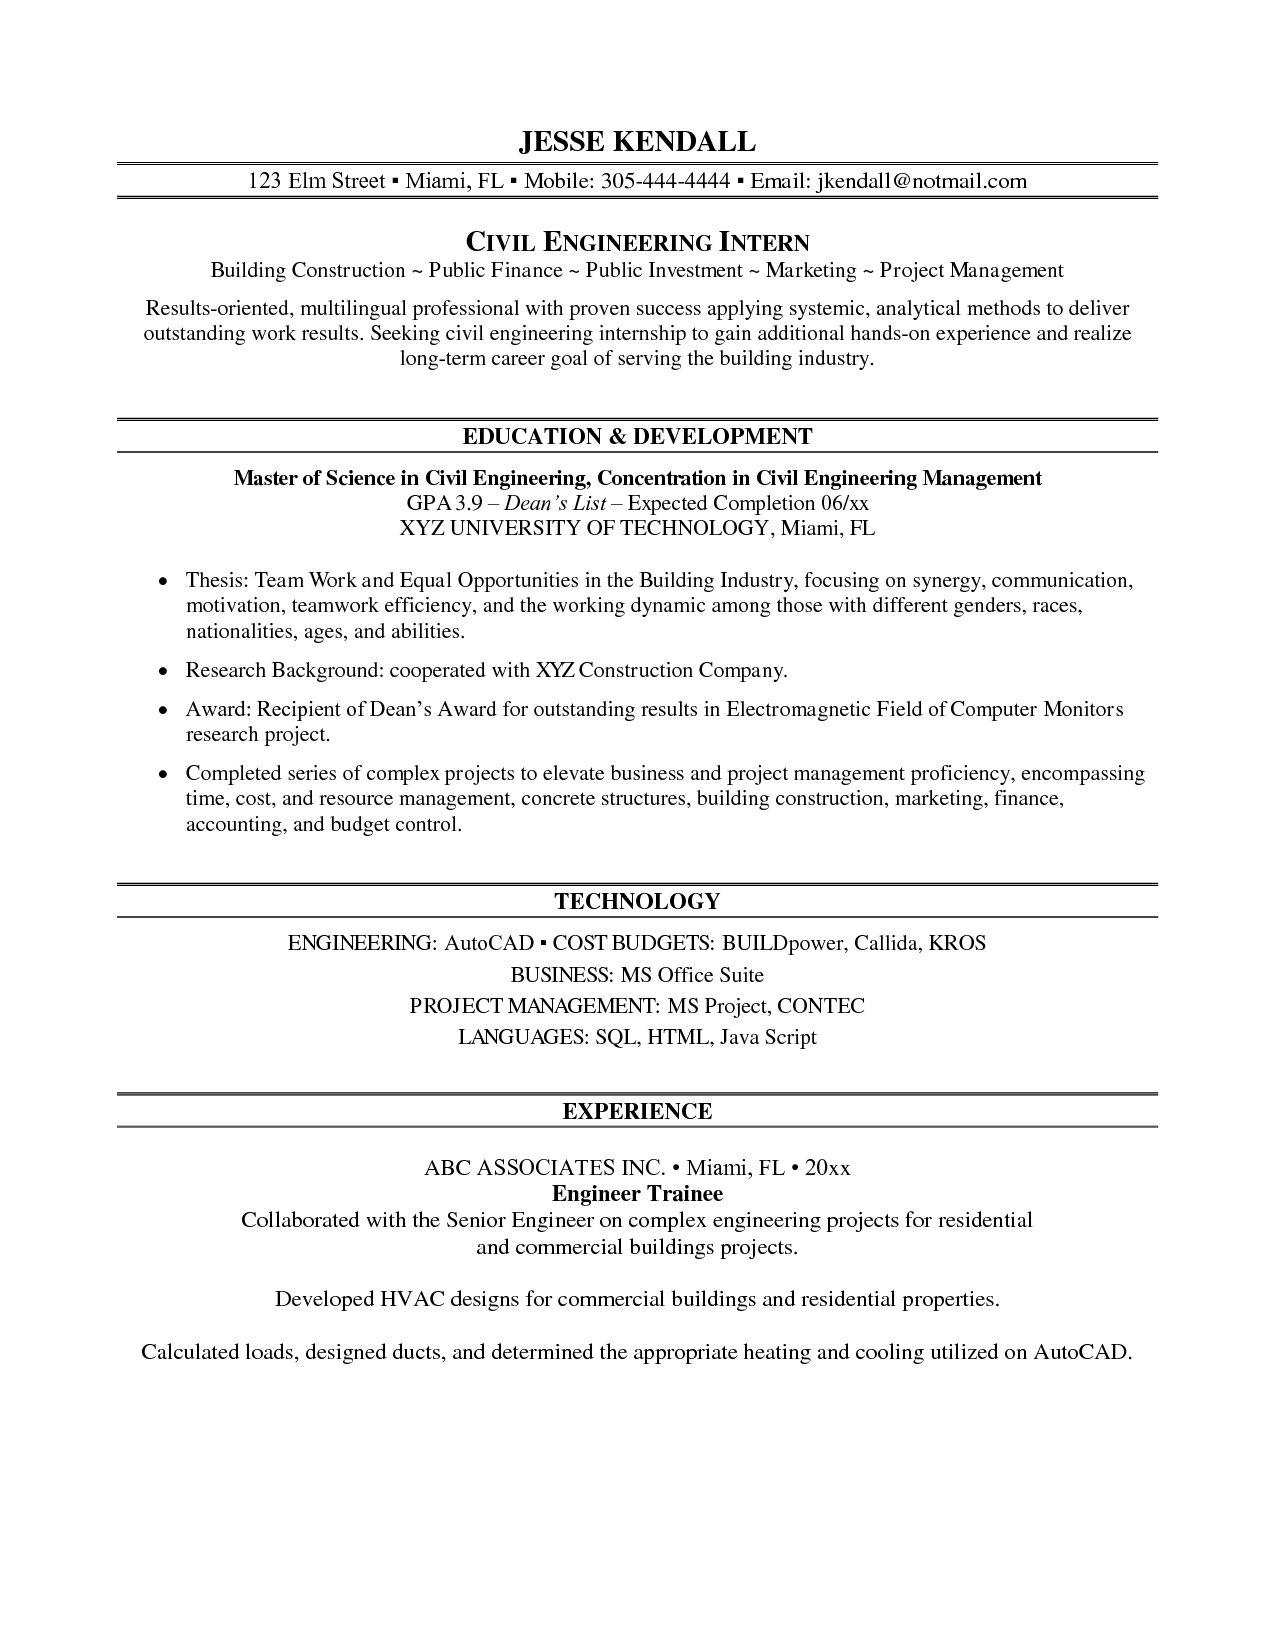 Resume Objective For Civil Engineering Student Internship On Resume Best Template Collection Http Www